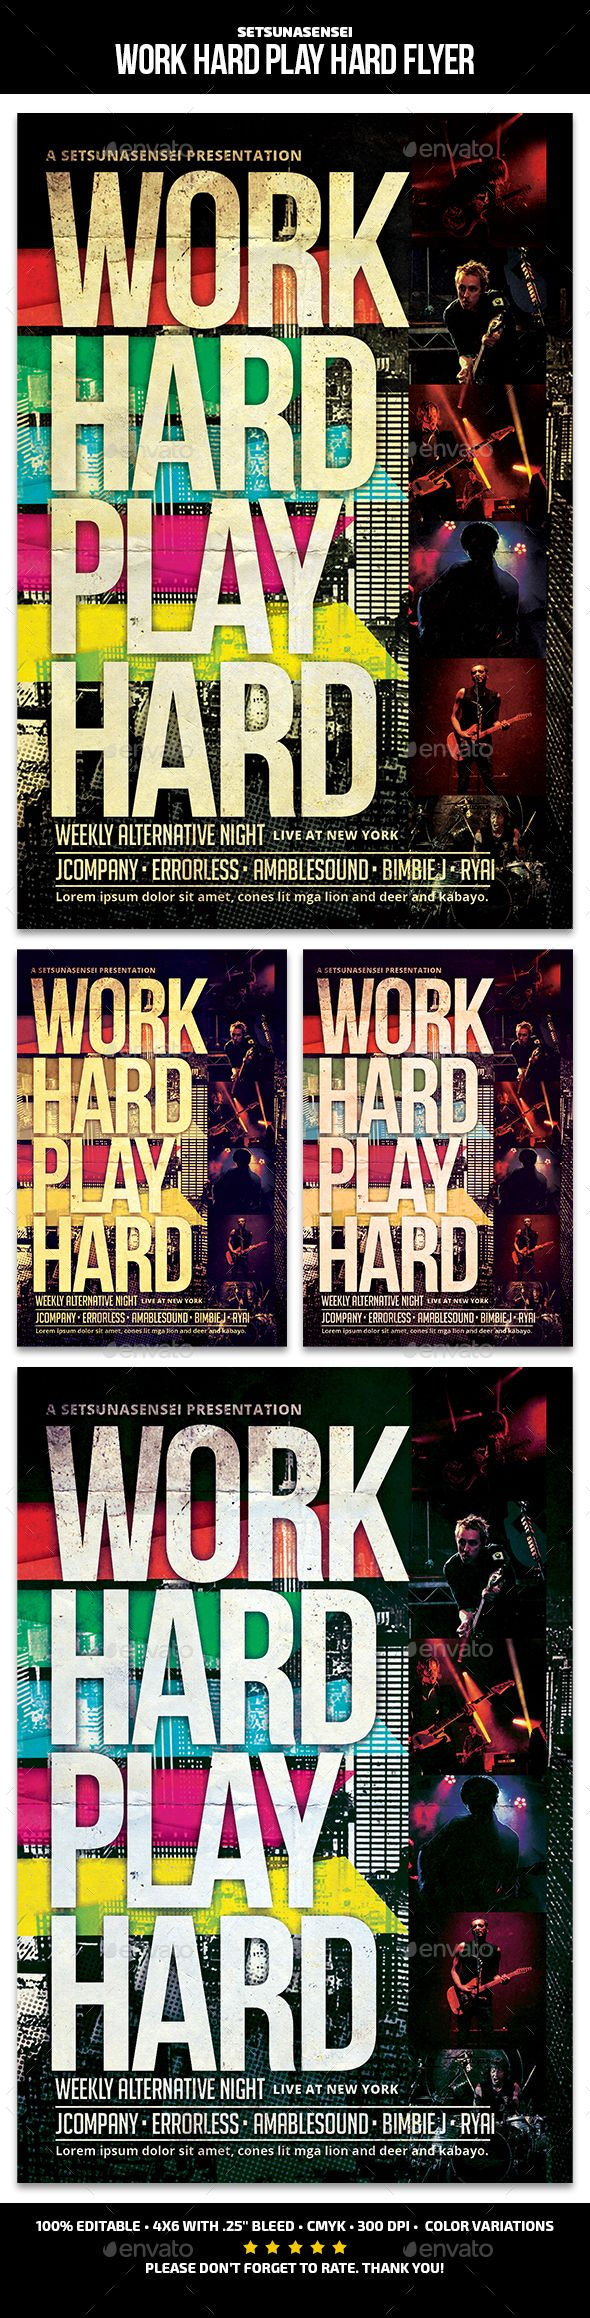 Work Hard Play Hard Flyer by SetsunaSensei Work Hard Play Hard FlyerThis flyer is perfect for promoting your next indie concert. FeaturesThe flyers size is 46 with .25 blee